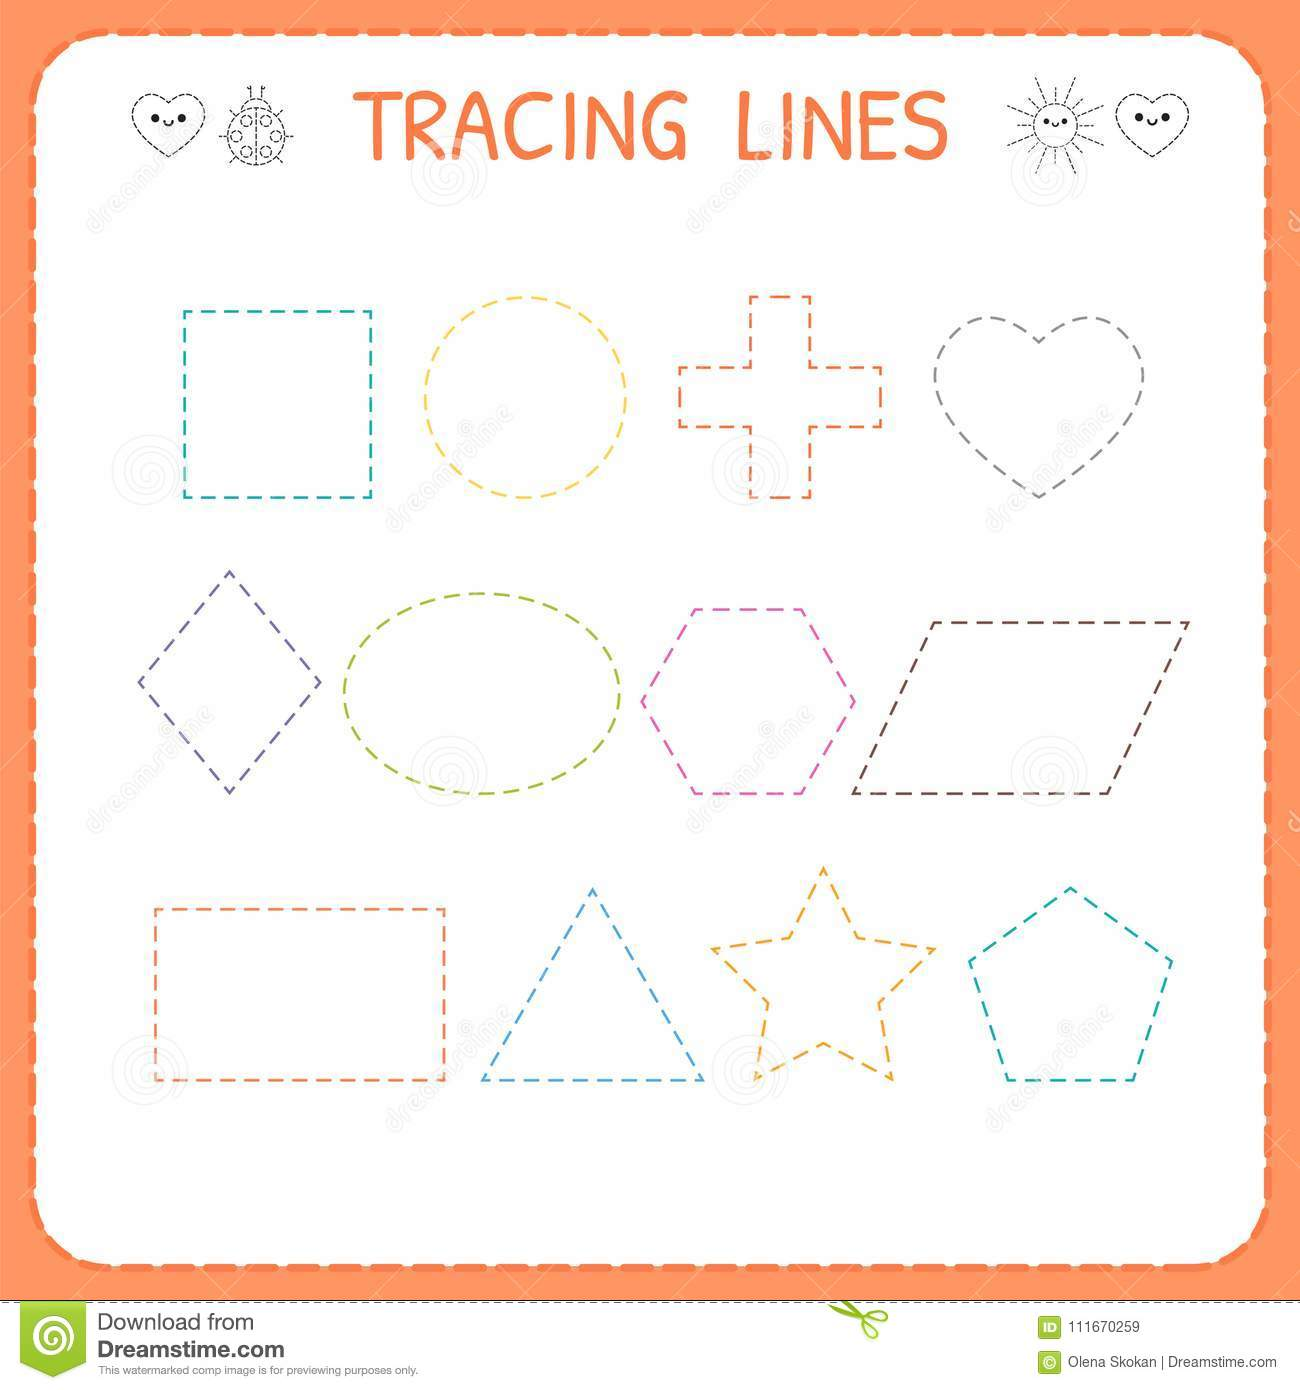 Trace Line Worksheet For Kids Working Pages For Children Preschool Or Kindergarten Worksheet